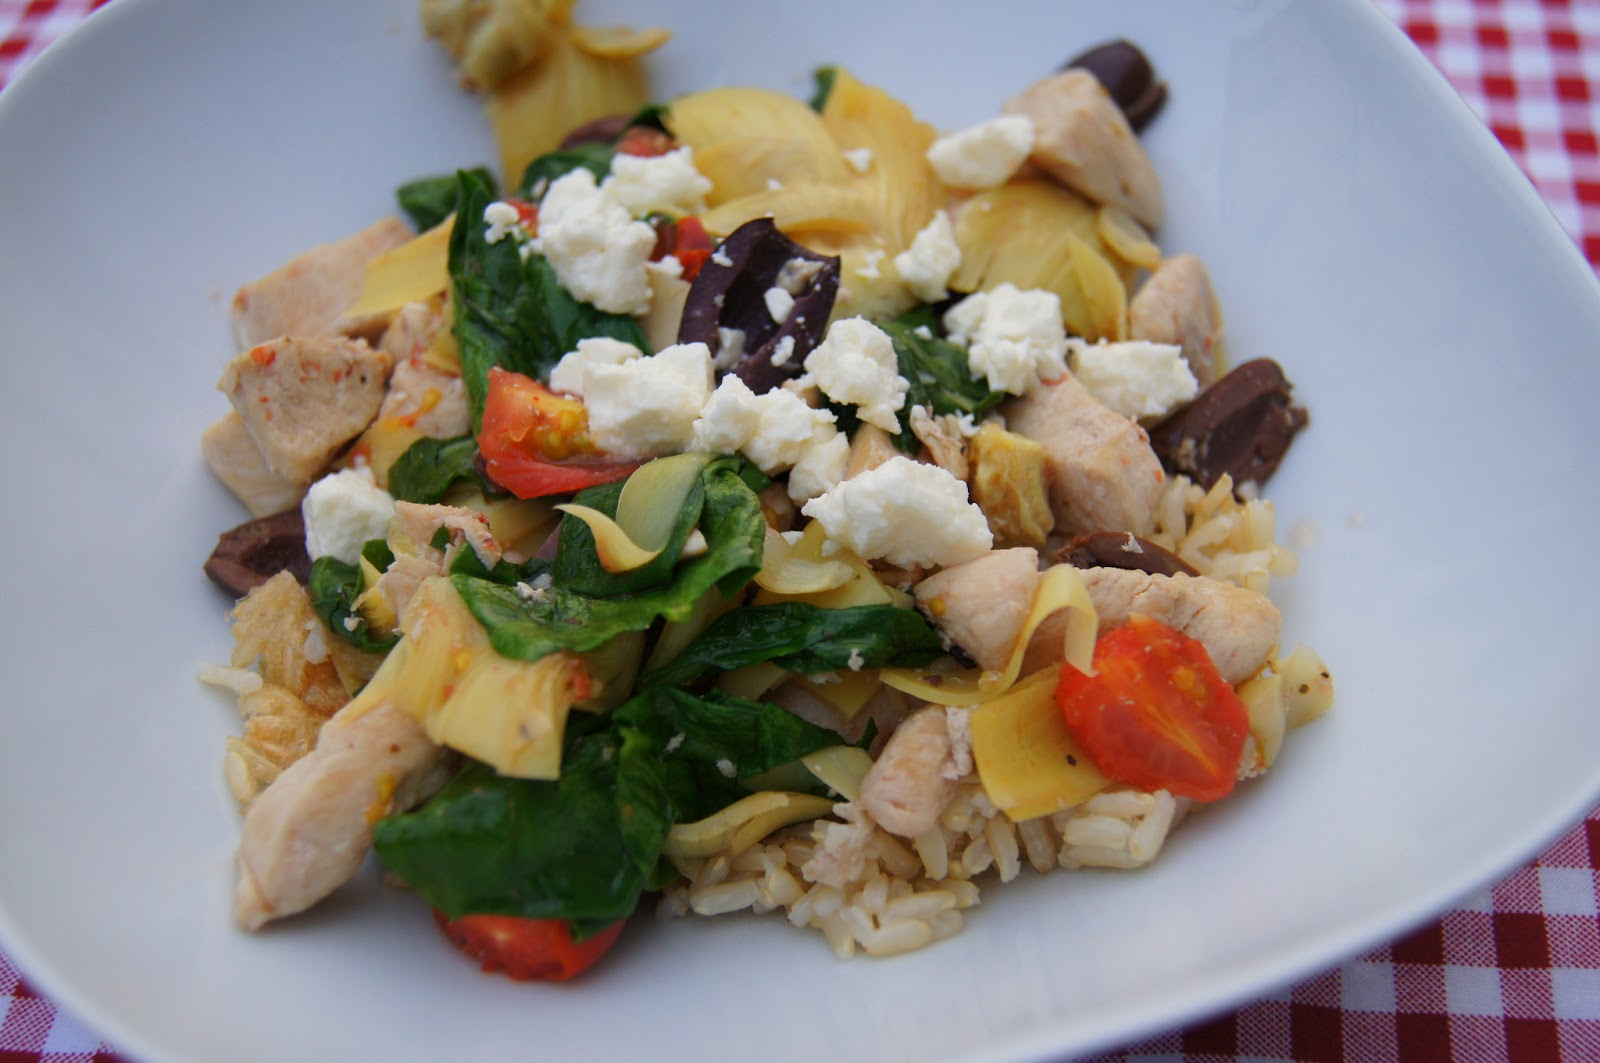 Sorry, that greek chicken with artichokes possible tell